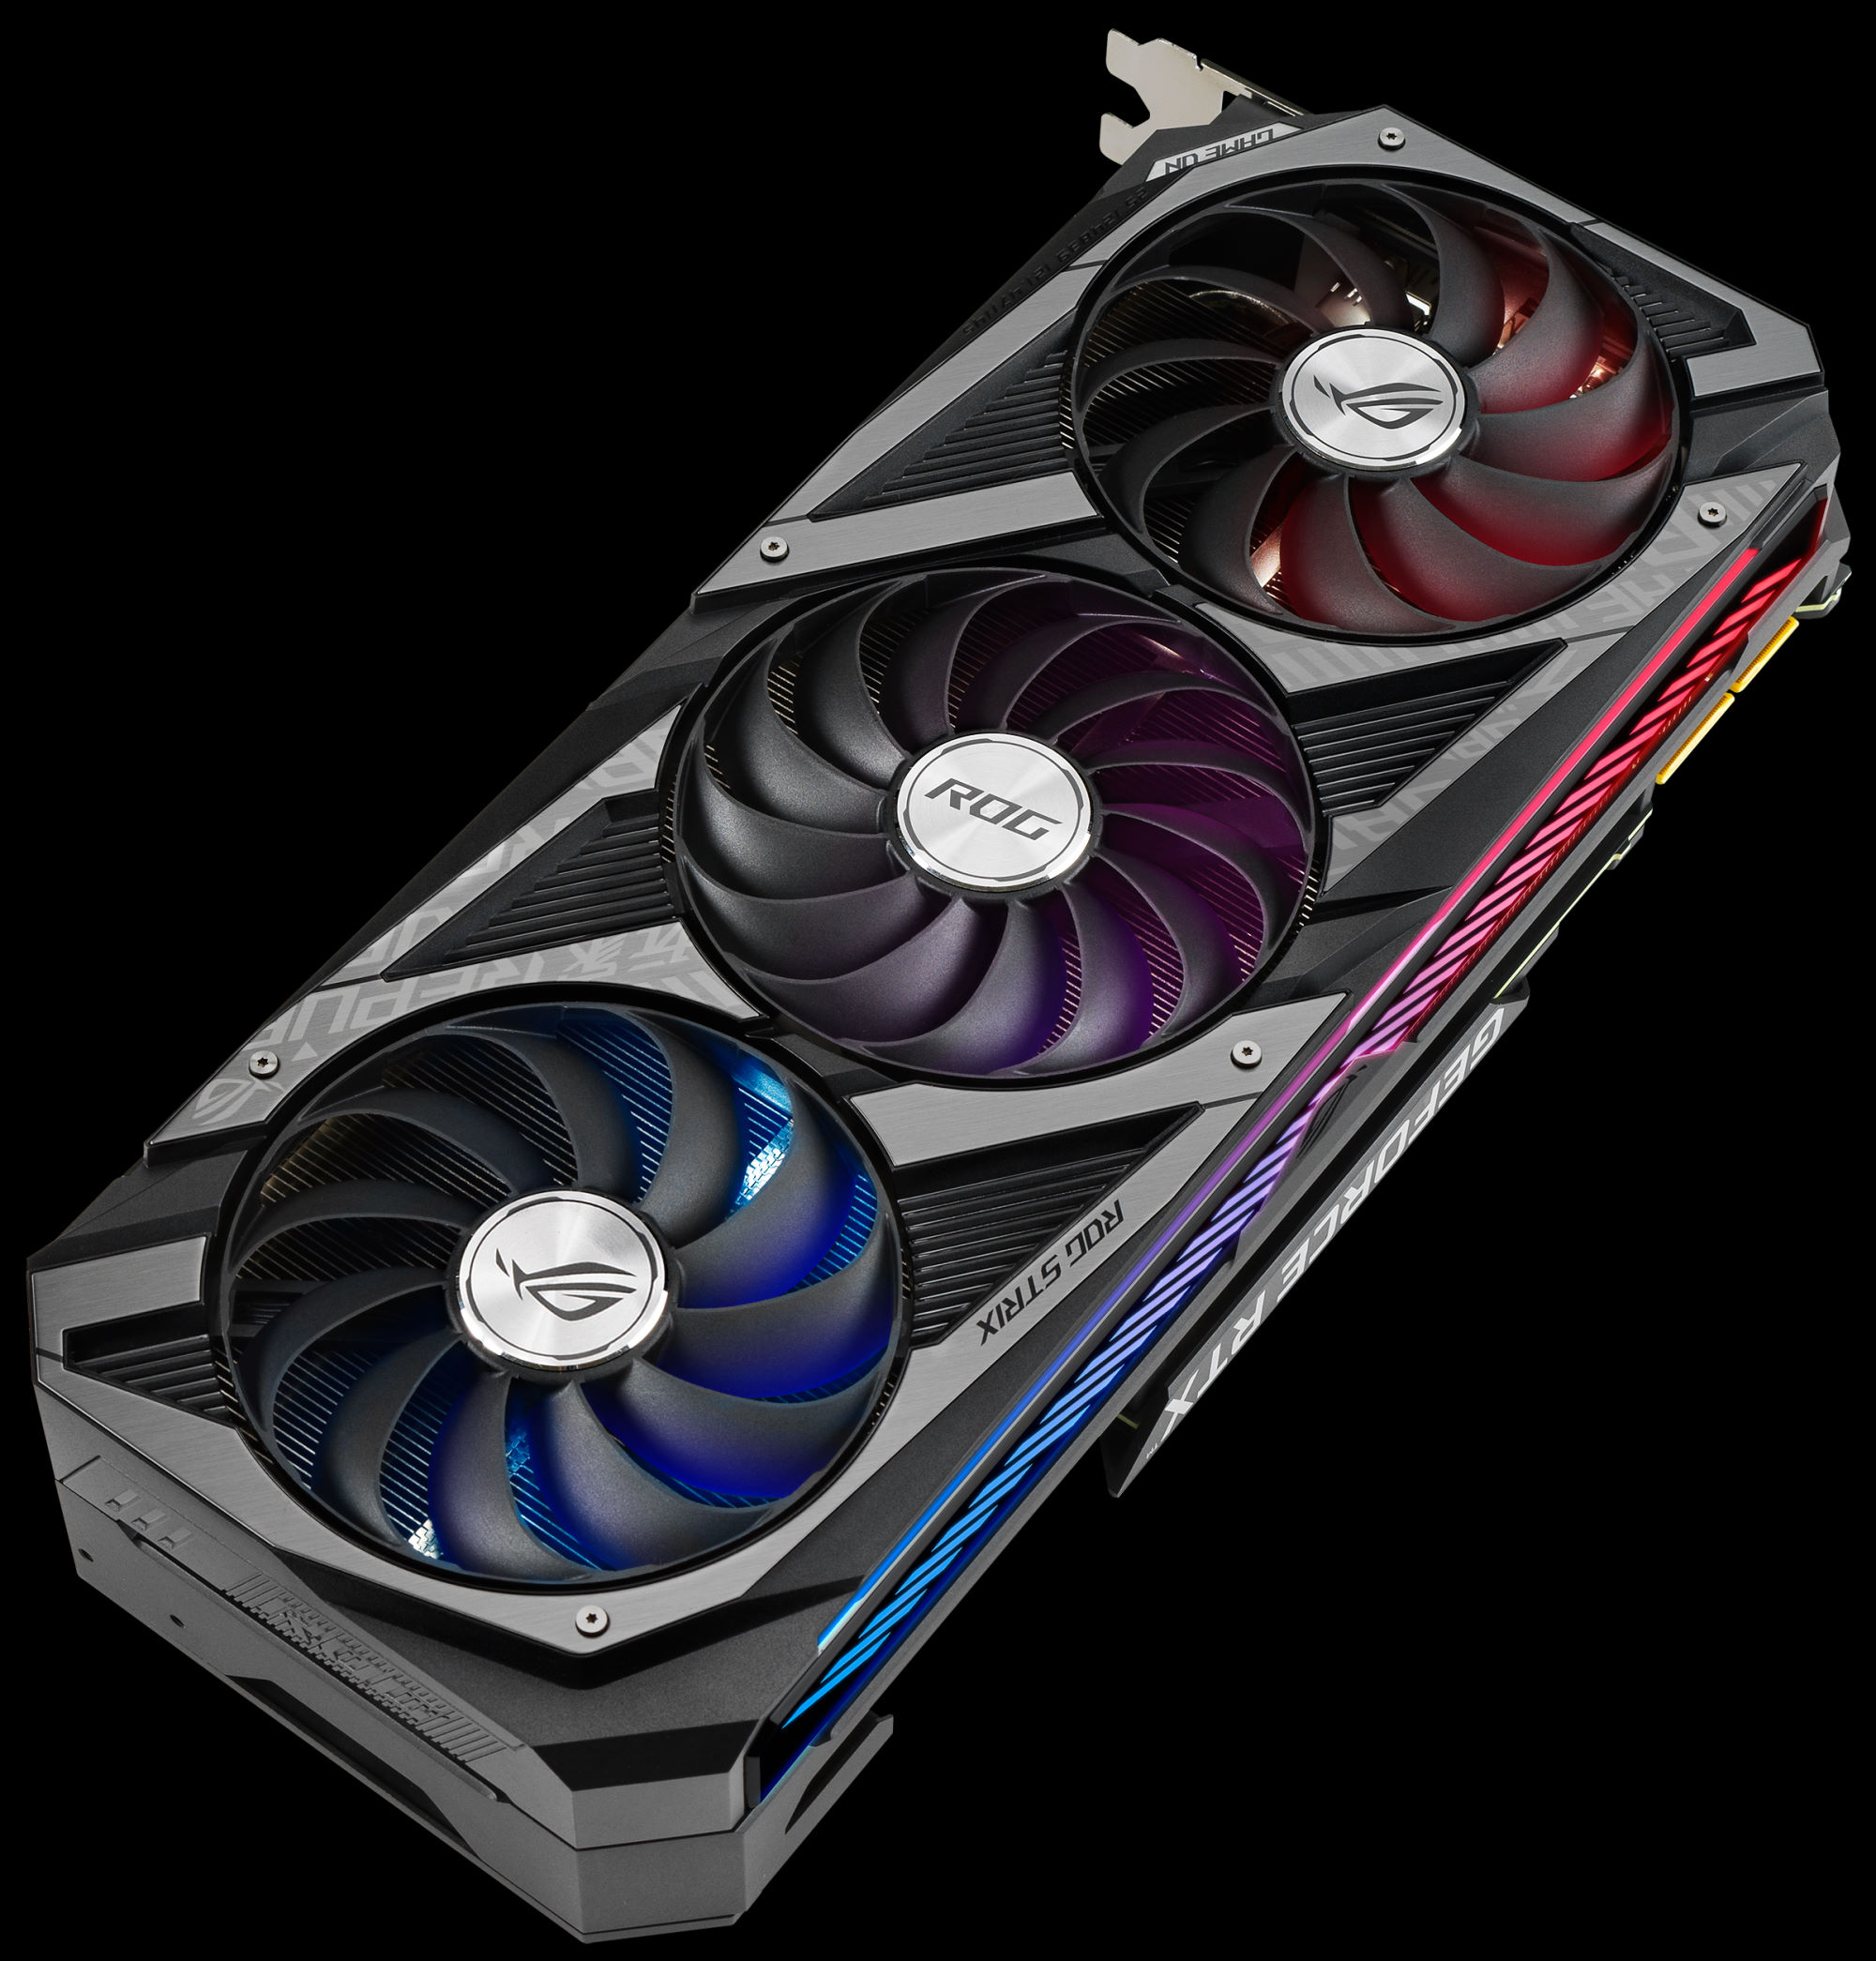 1598956491392 - Asus Nvidia Geforce RTX 3090 & 3080 Press Release